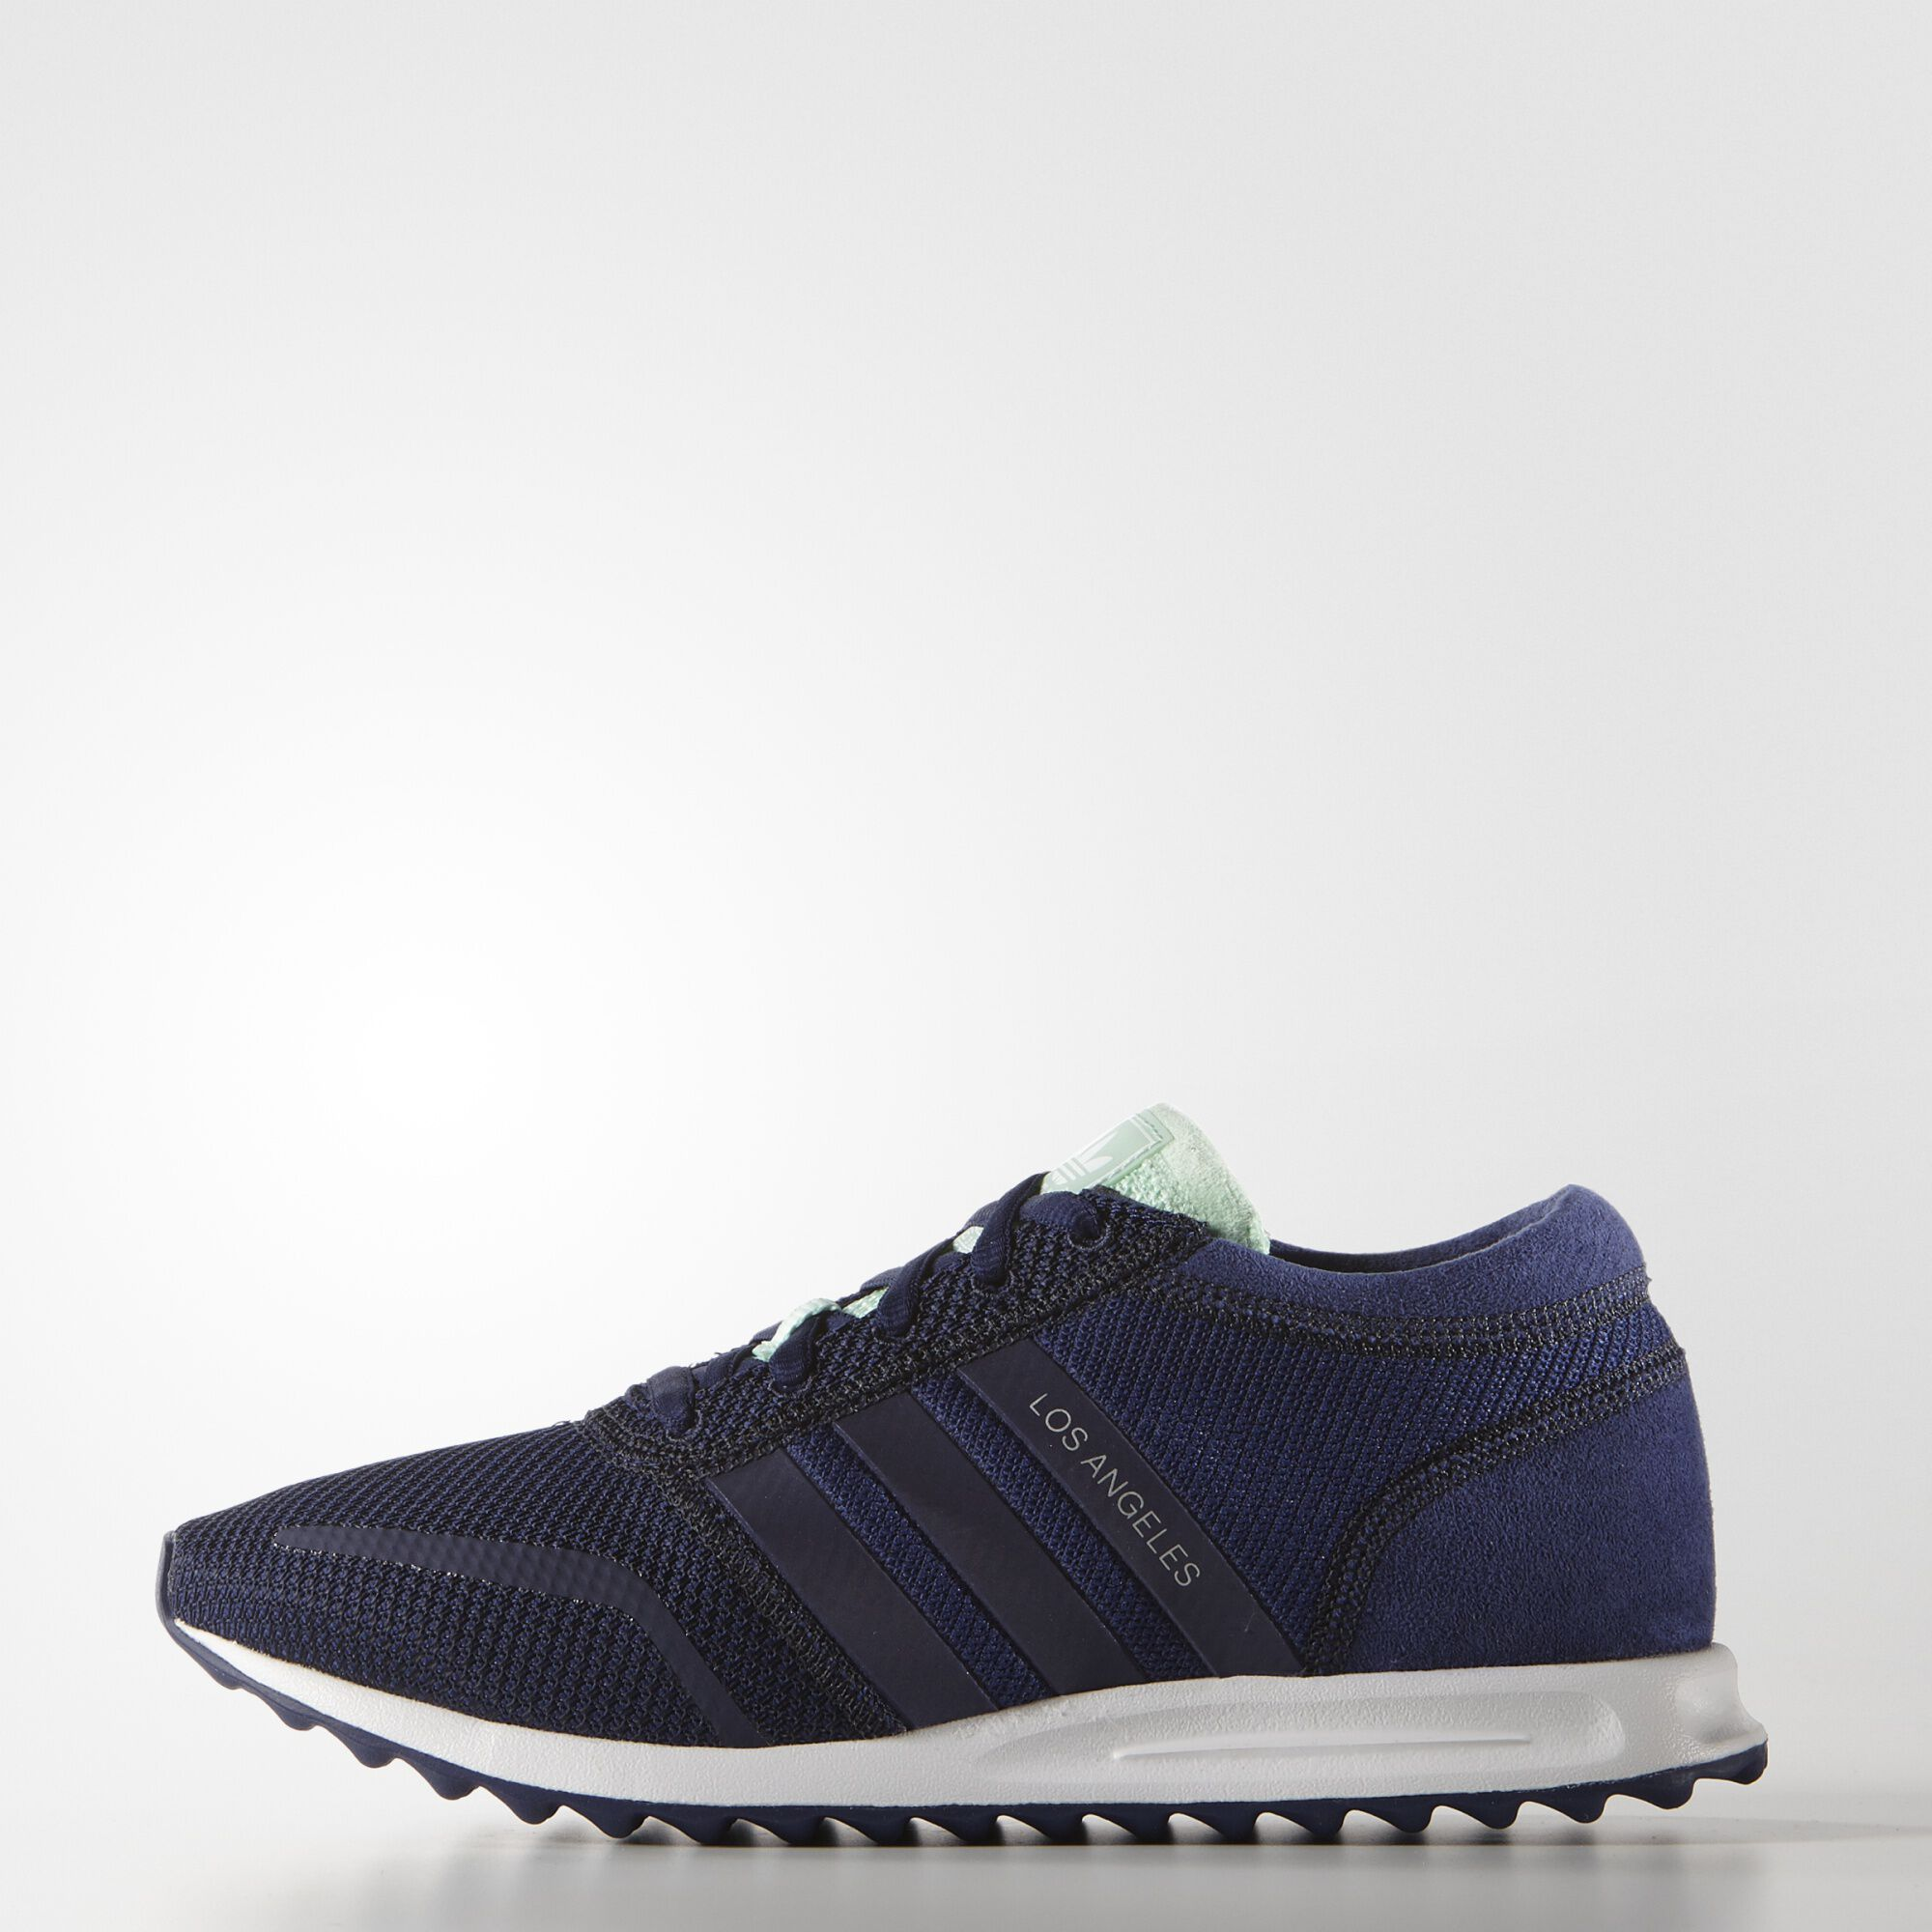 Adidas Los Angeles Green